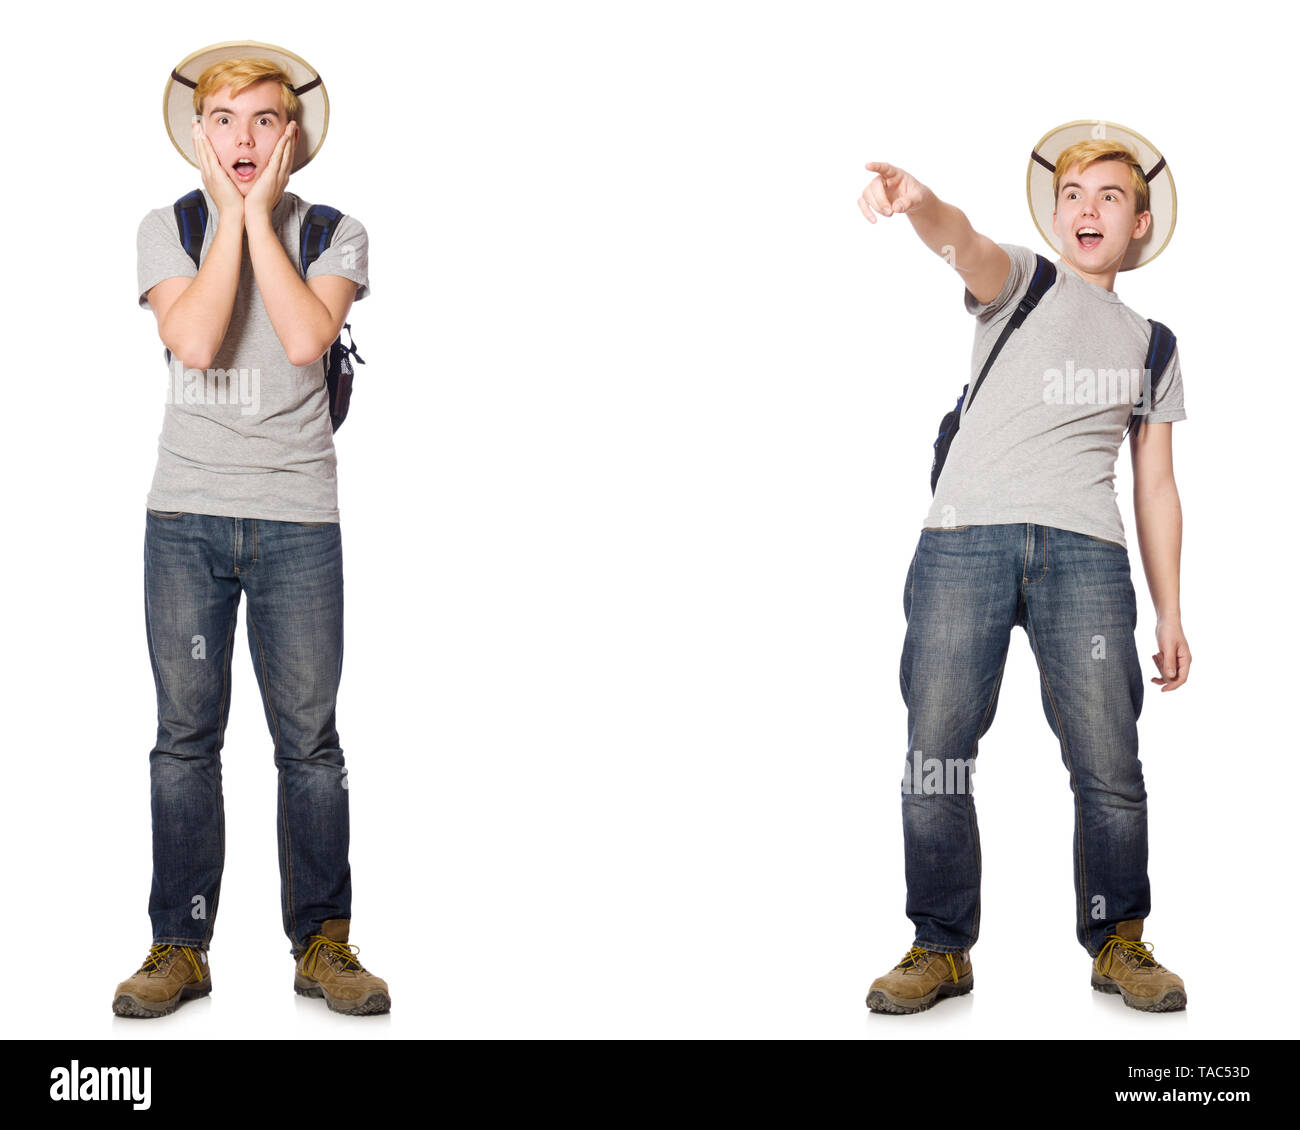 Young boy in cork helmet with backpack - Stock Image